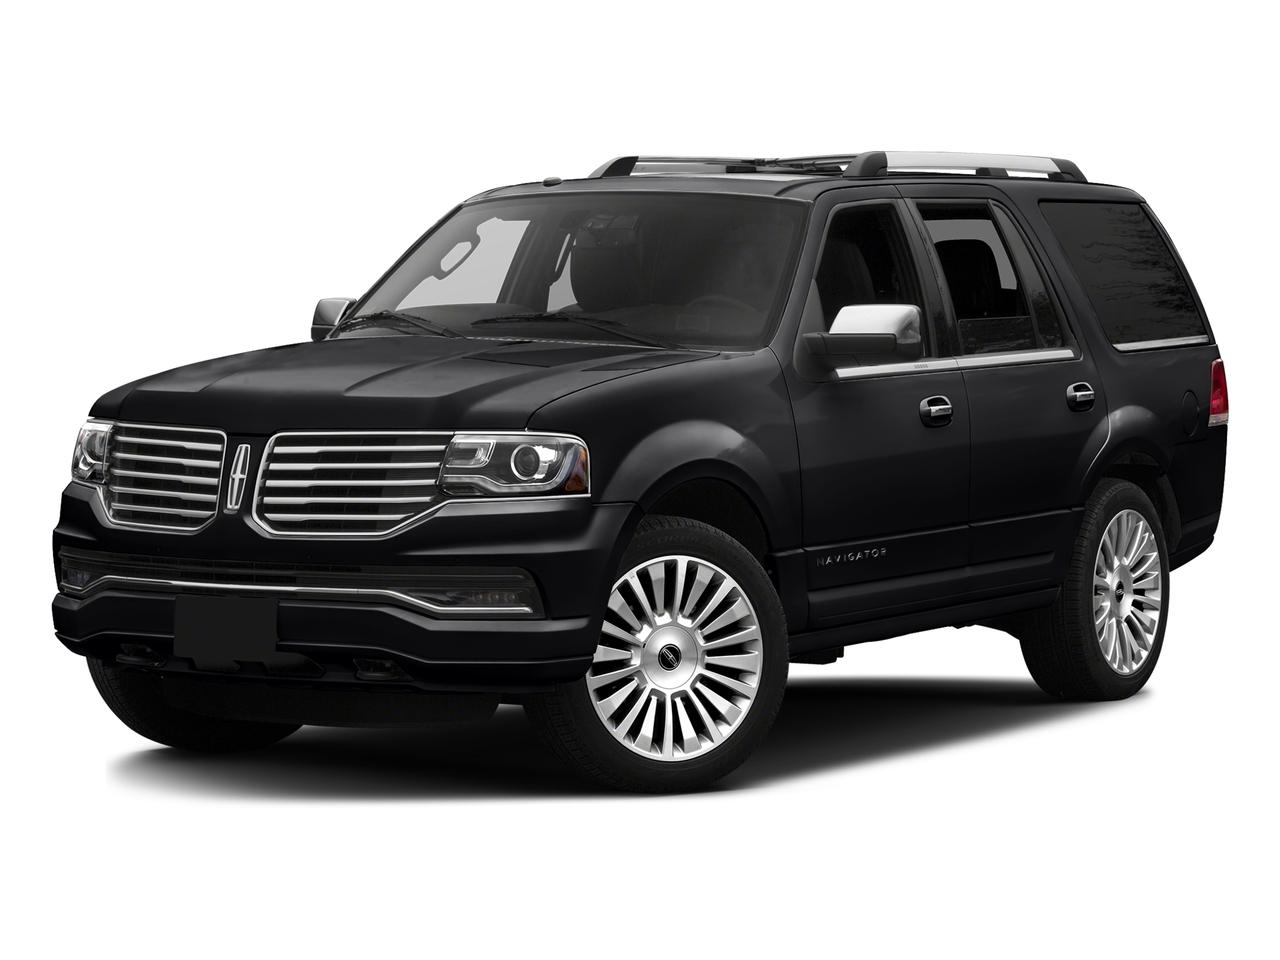 2017 LINCOLN Navigator Vehicle Photo in Colorado Springs, CO 80905